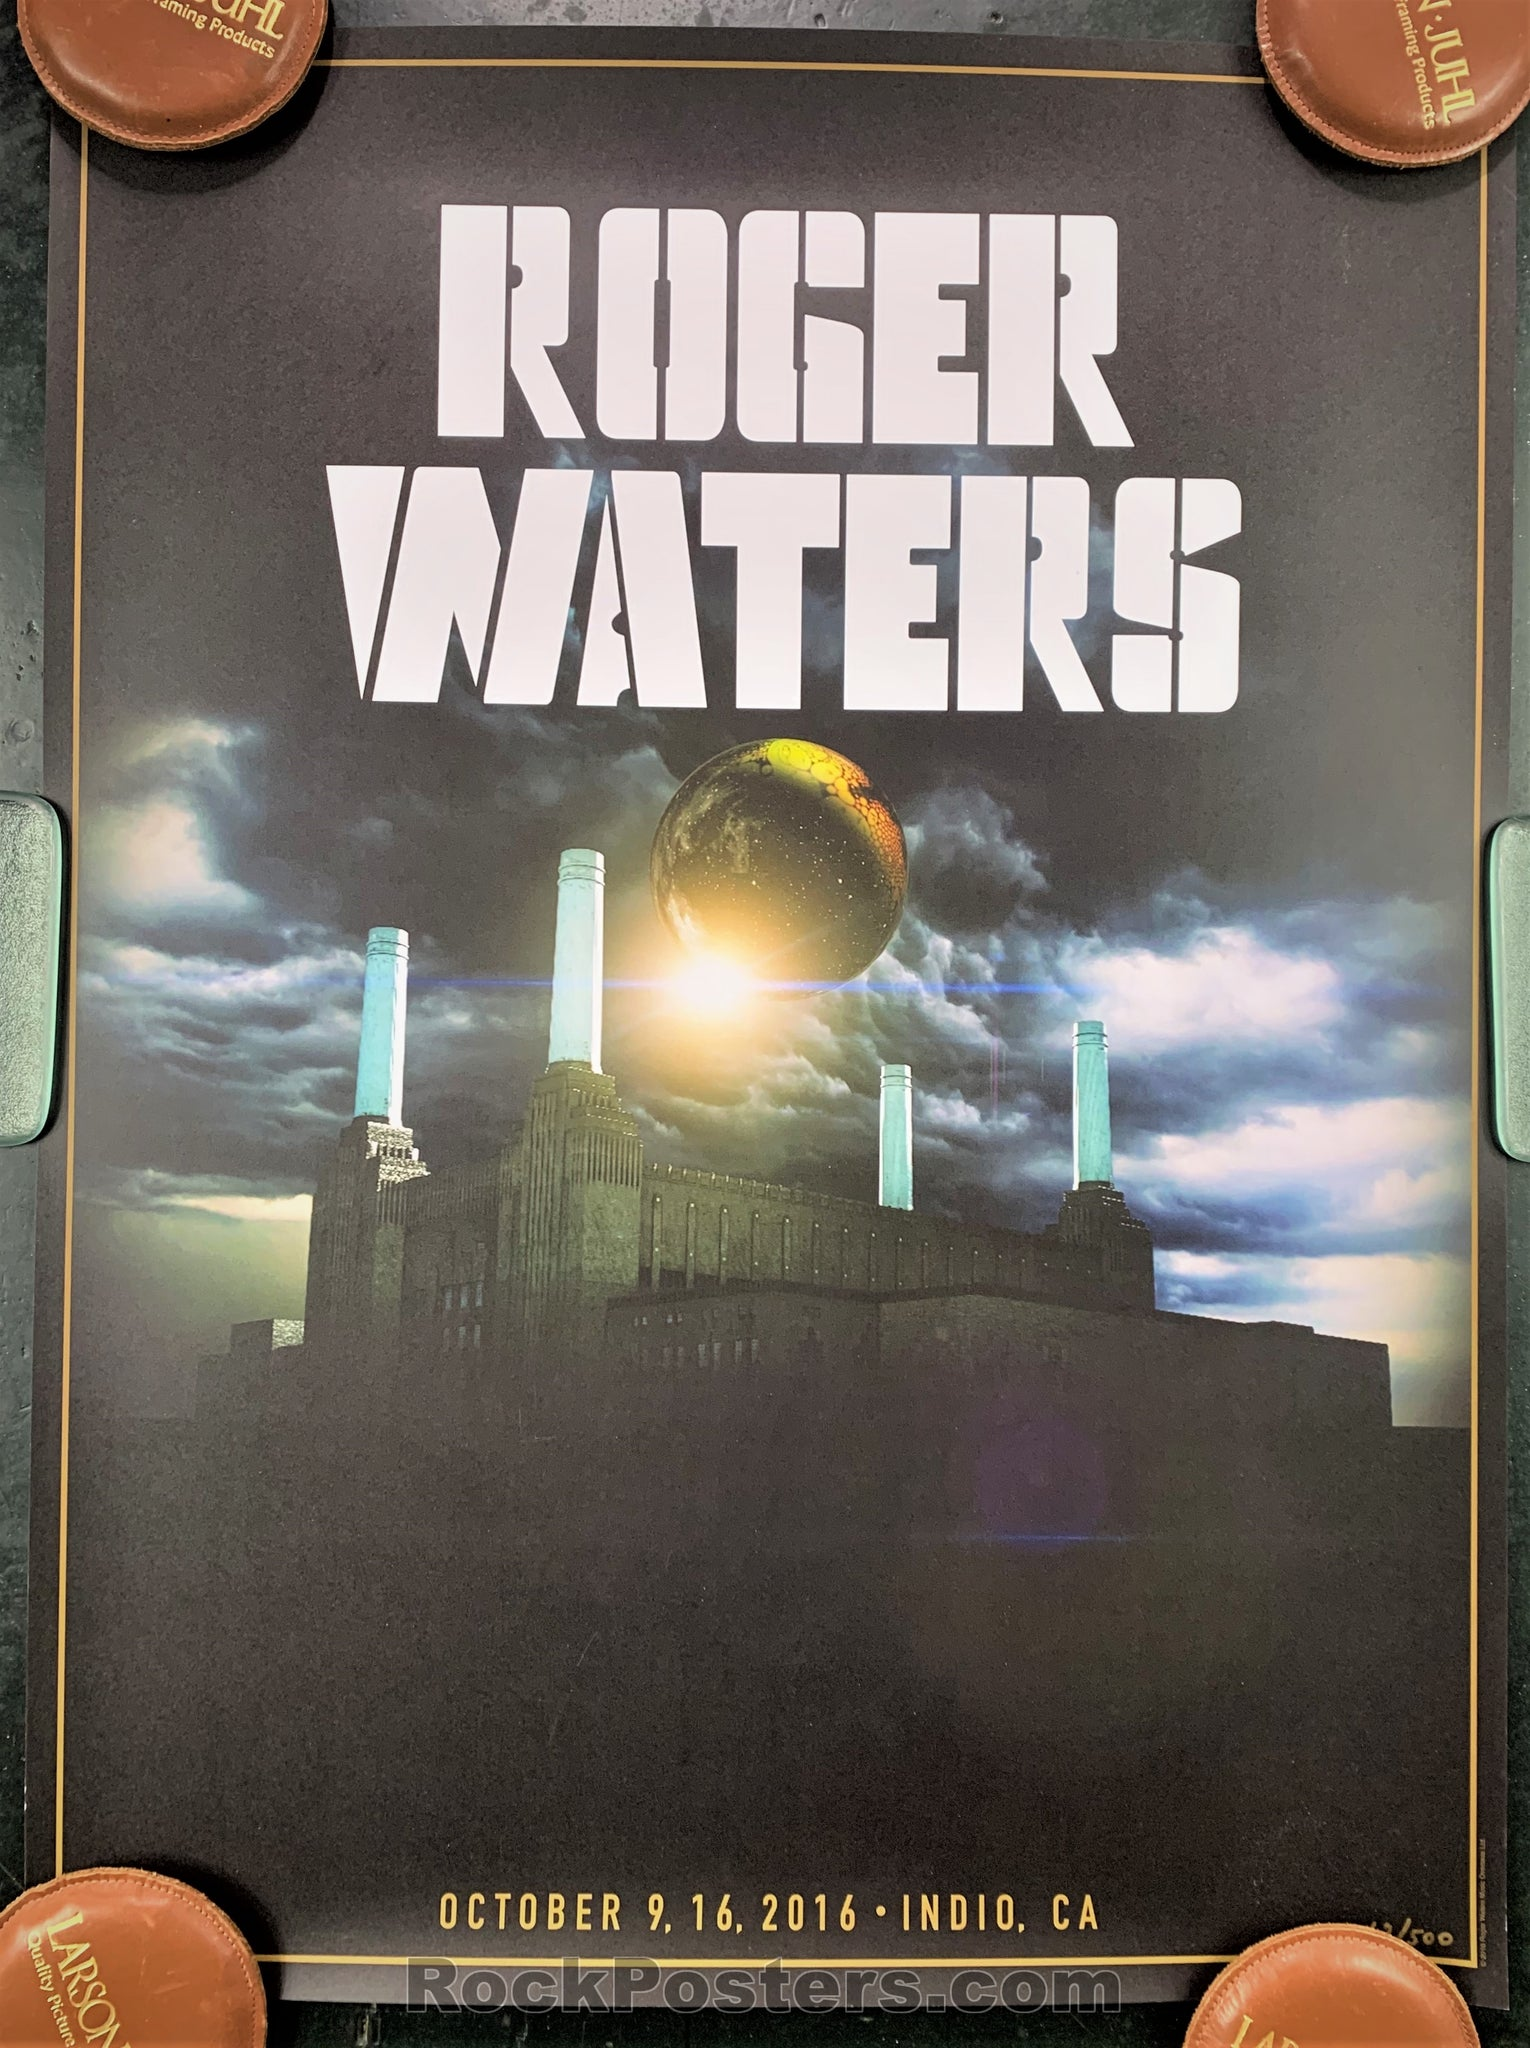 AUCTION - Pink Floyd - Roger Waters  Coachella 2016 Limited  Edition Poster  - Condition - Excellent